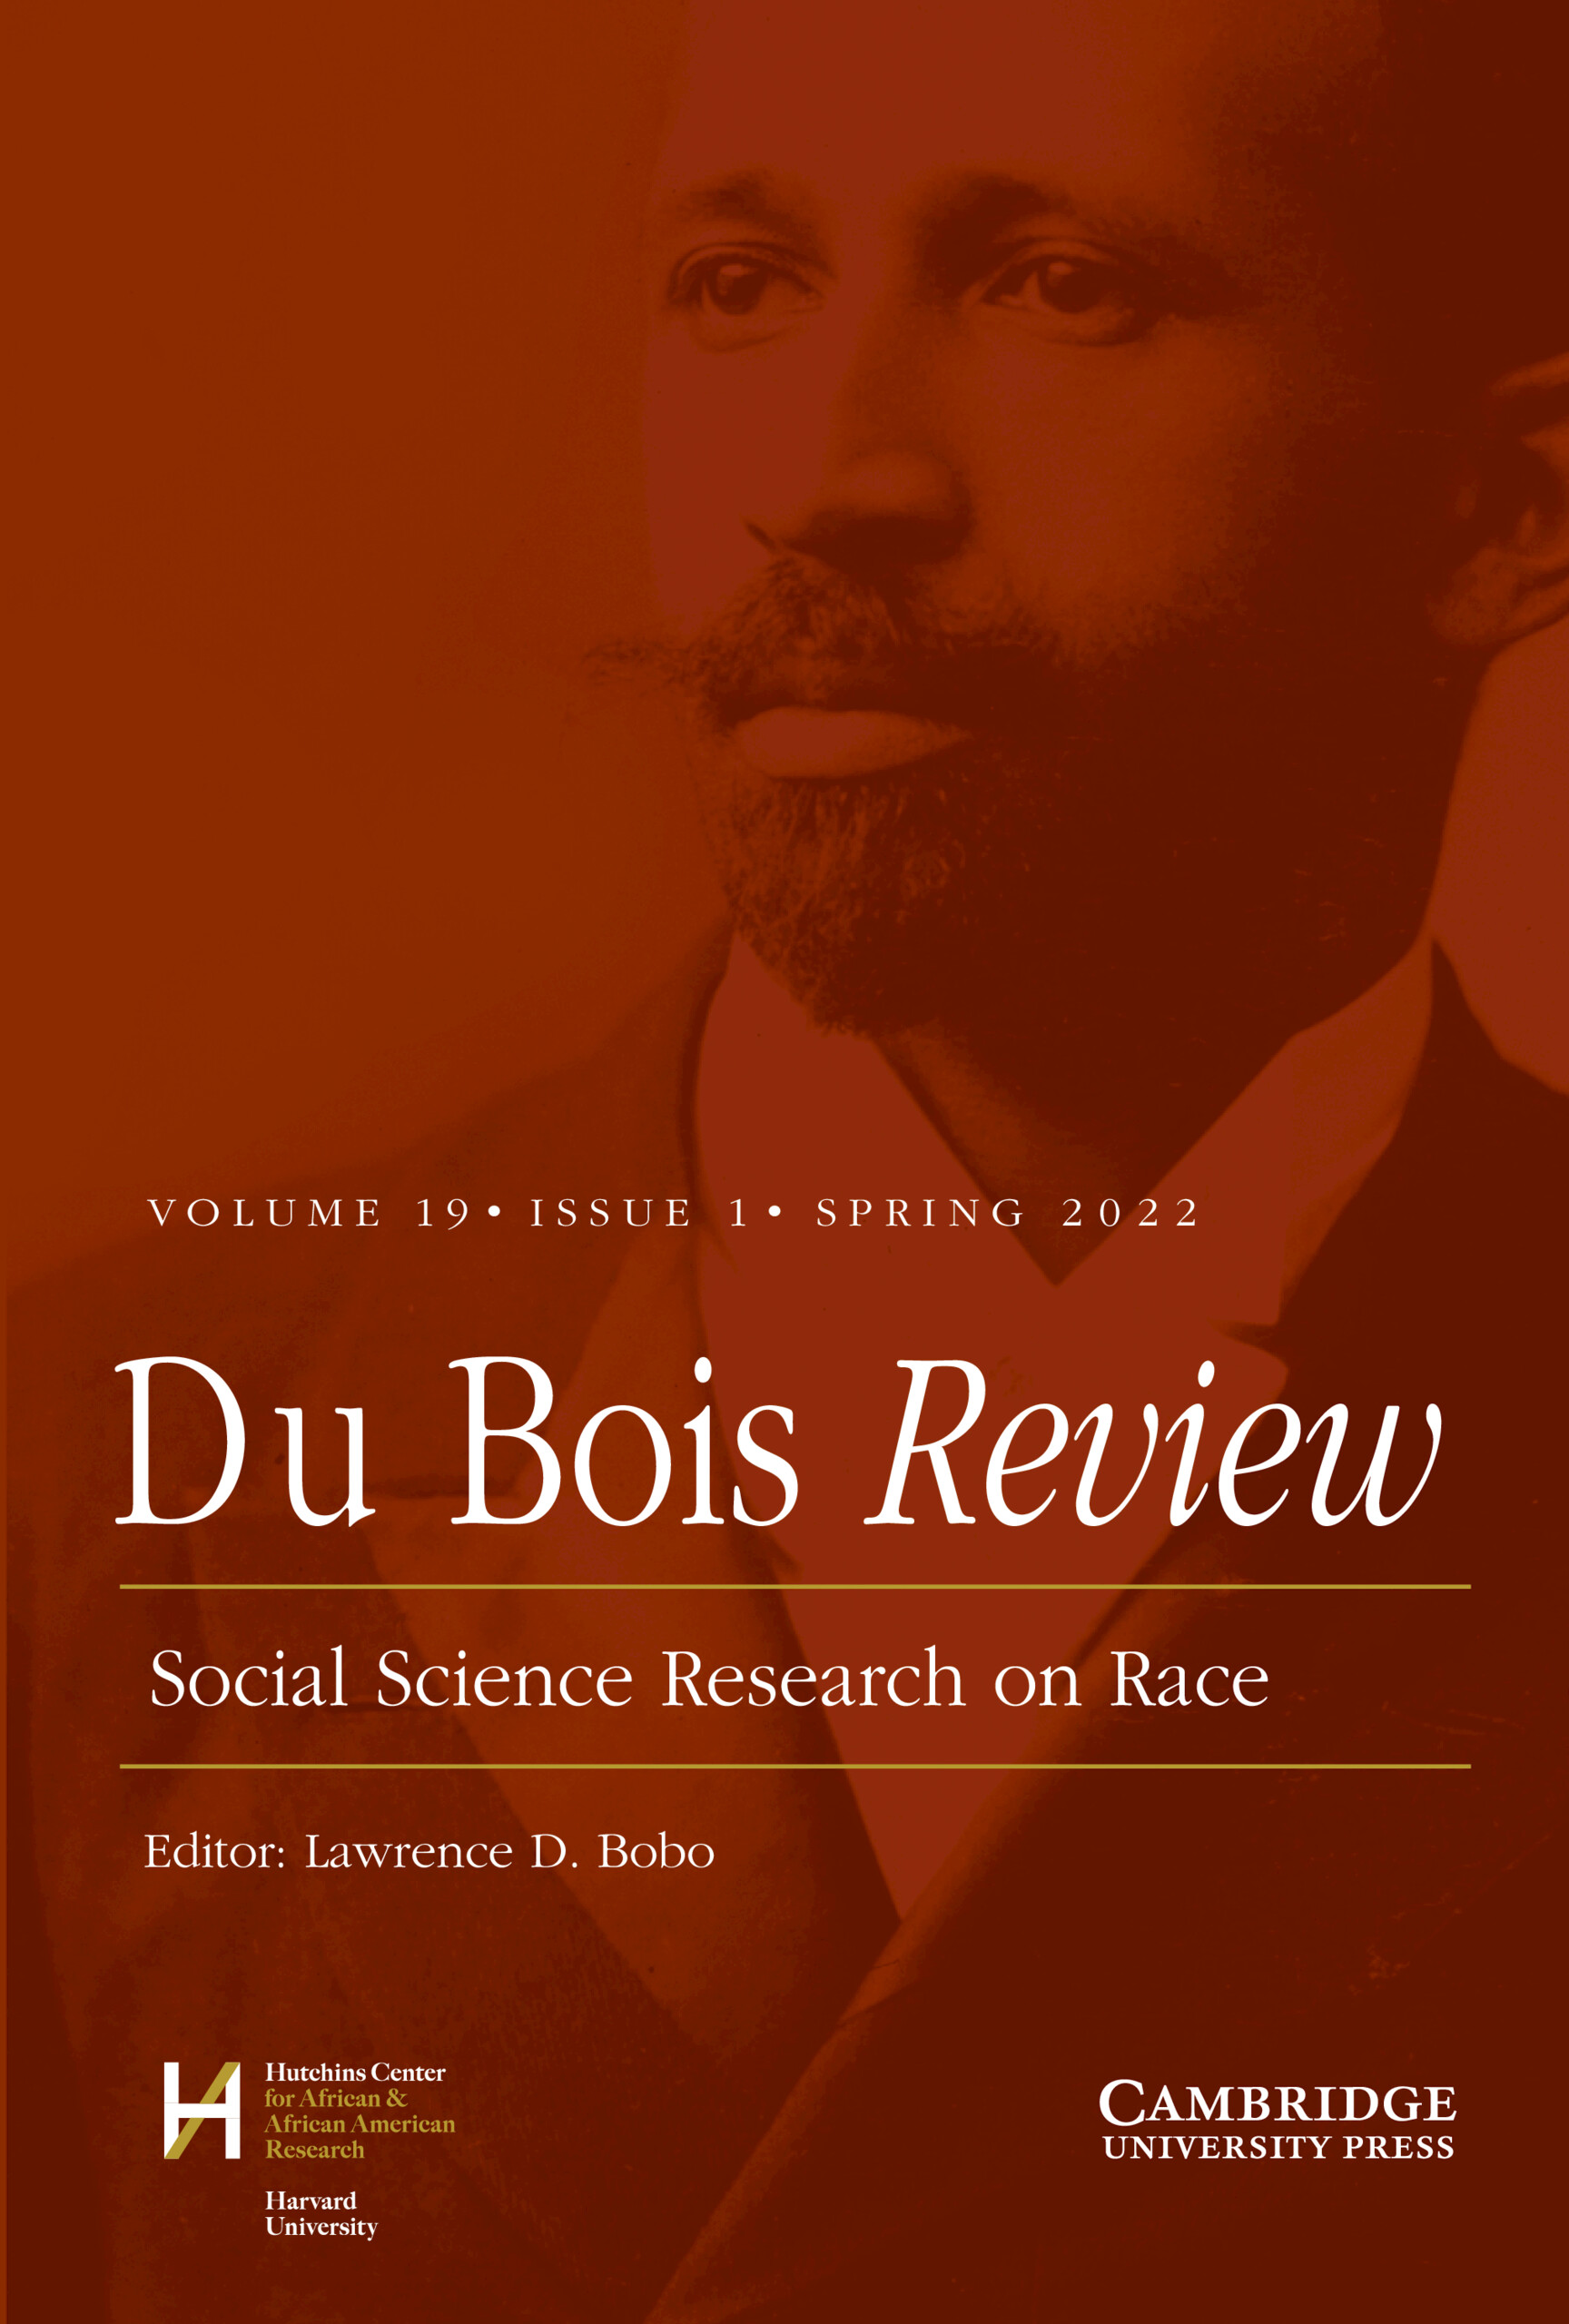 Du Bois Review: Social Science Research on Race